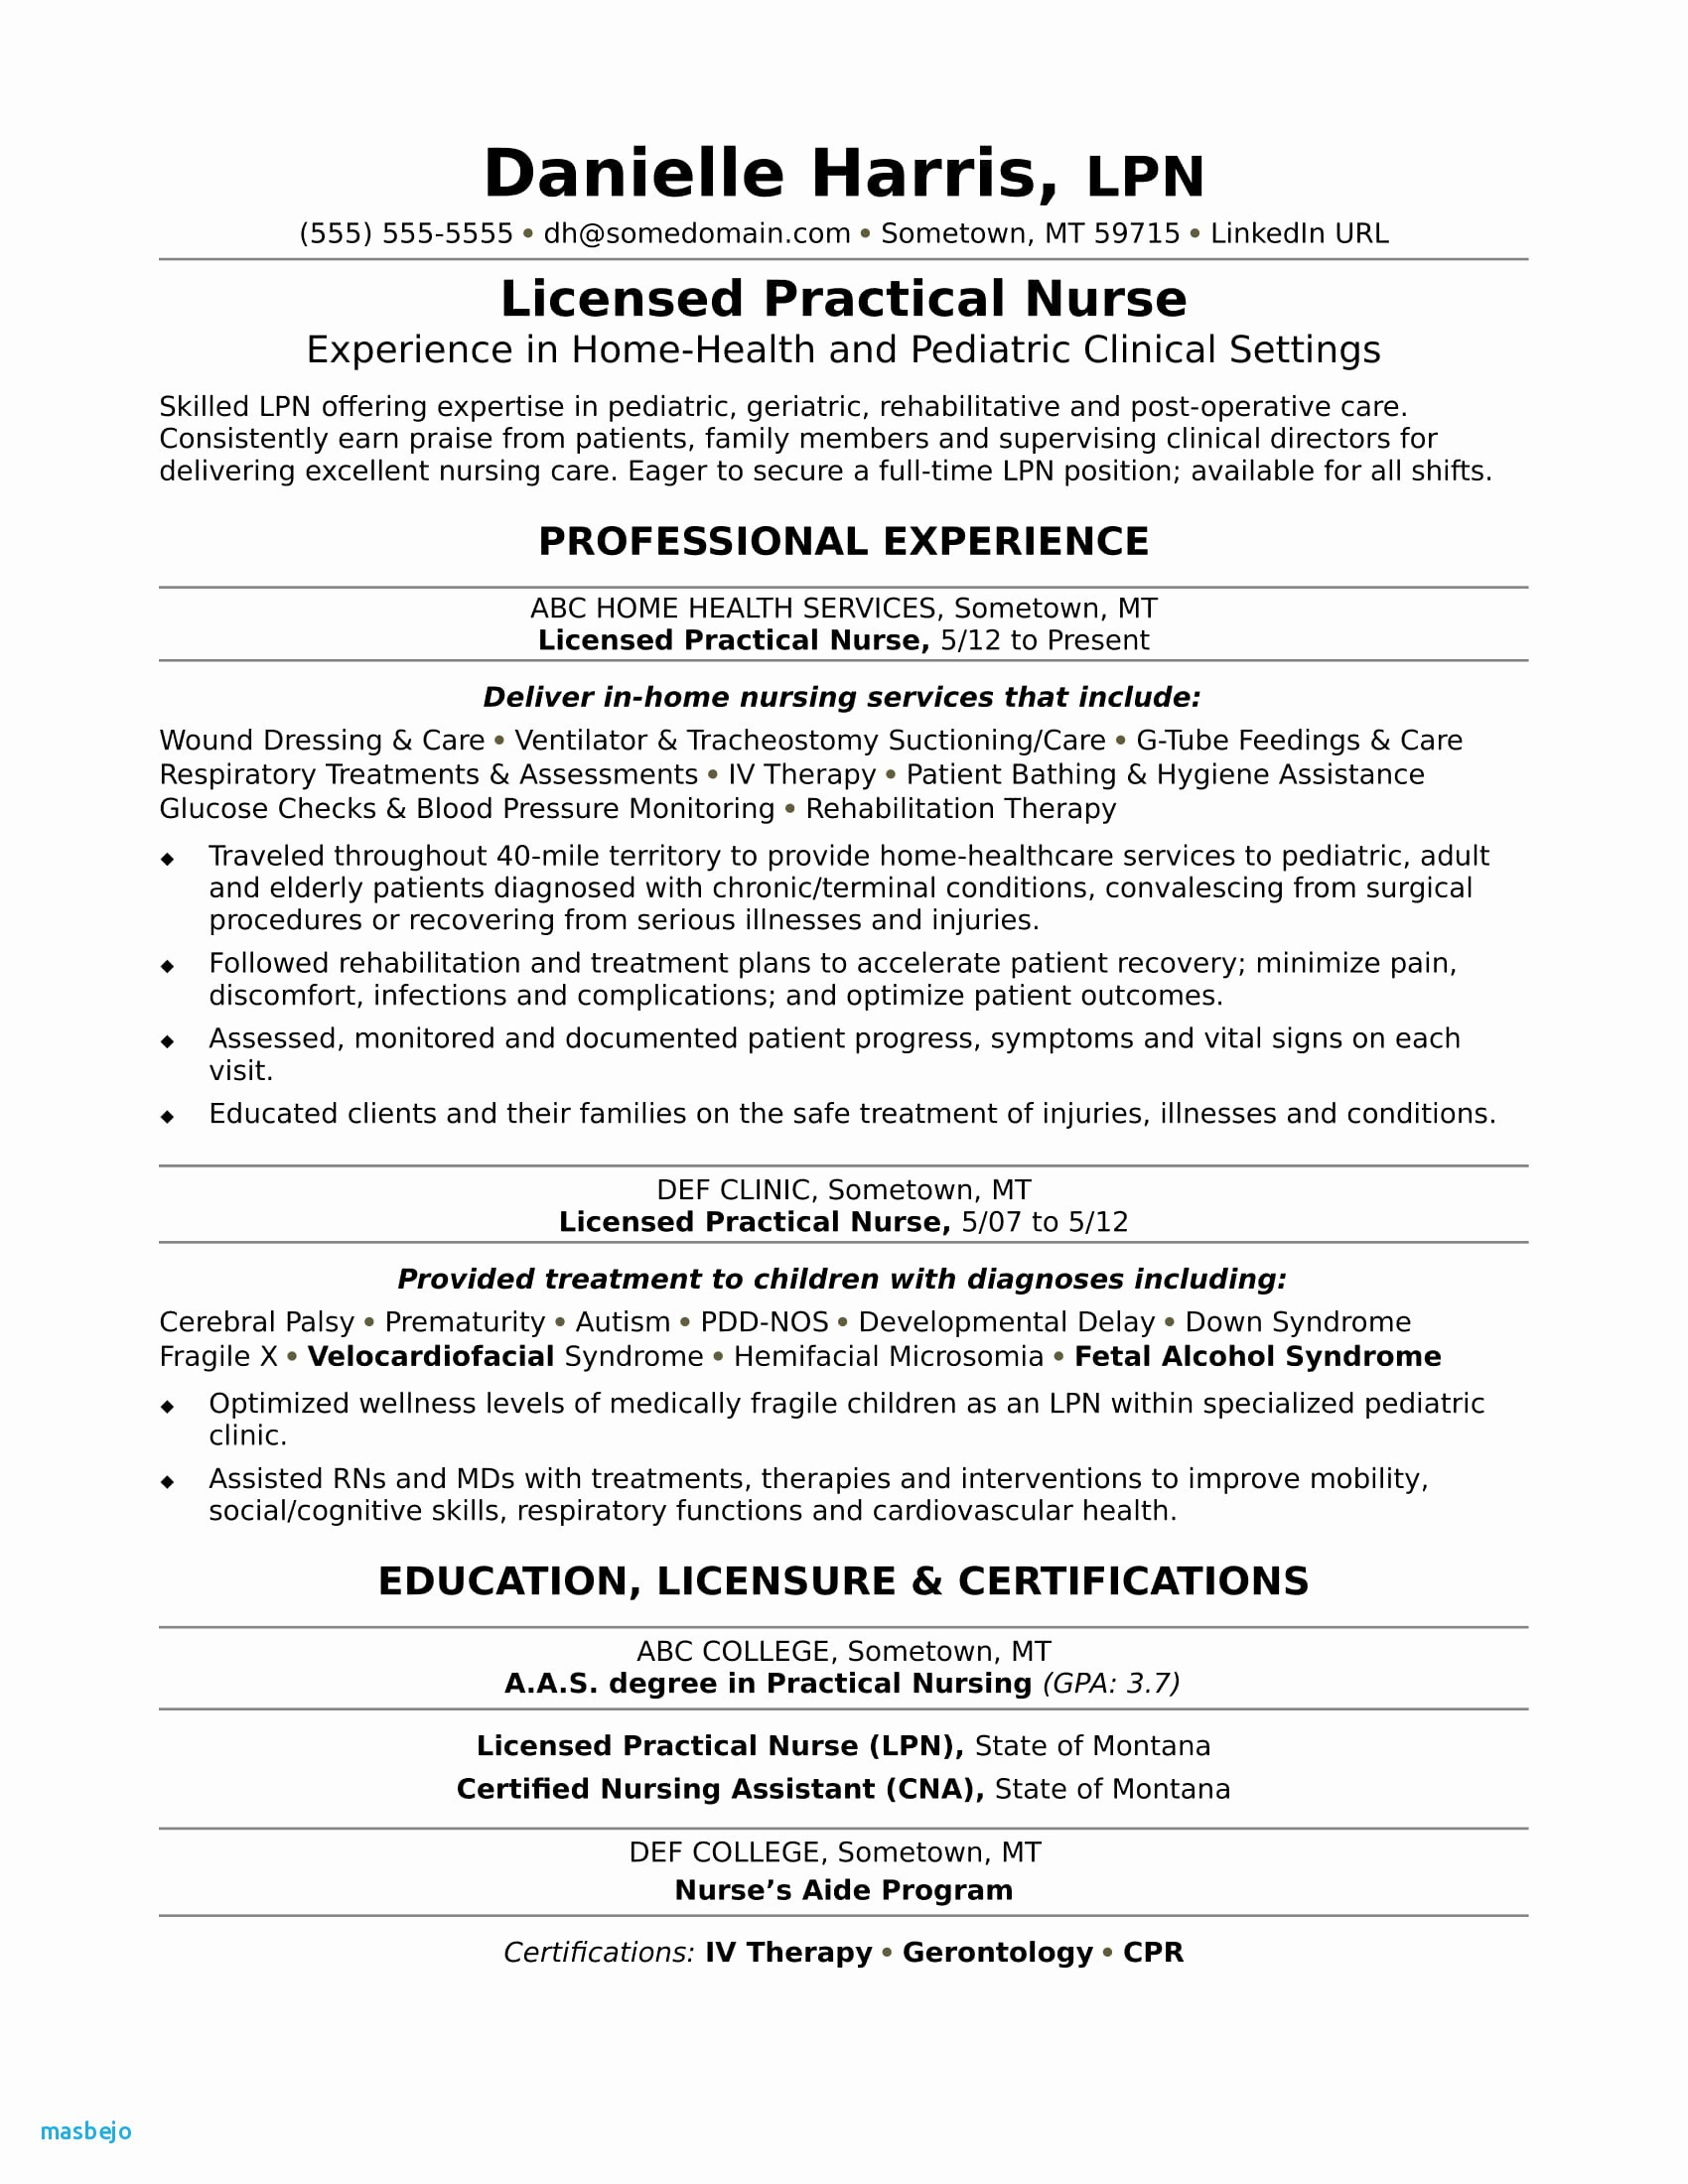 Home Care Nurse Resume Sample - Sample Resume for A New Registered Nurse Resume Resume Examples